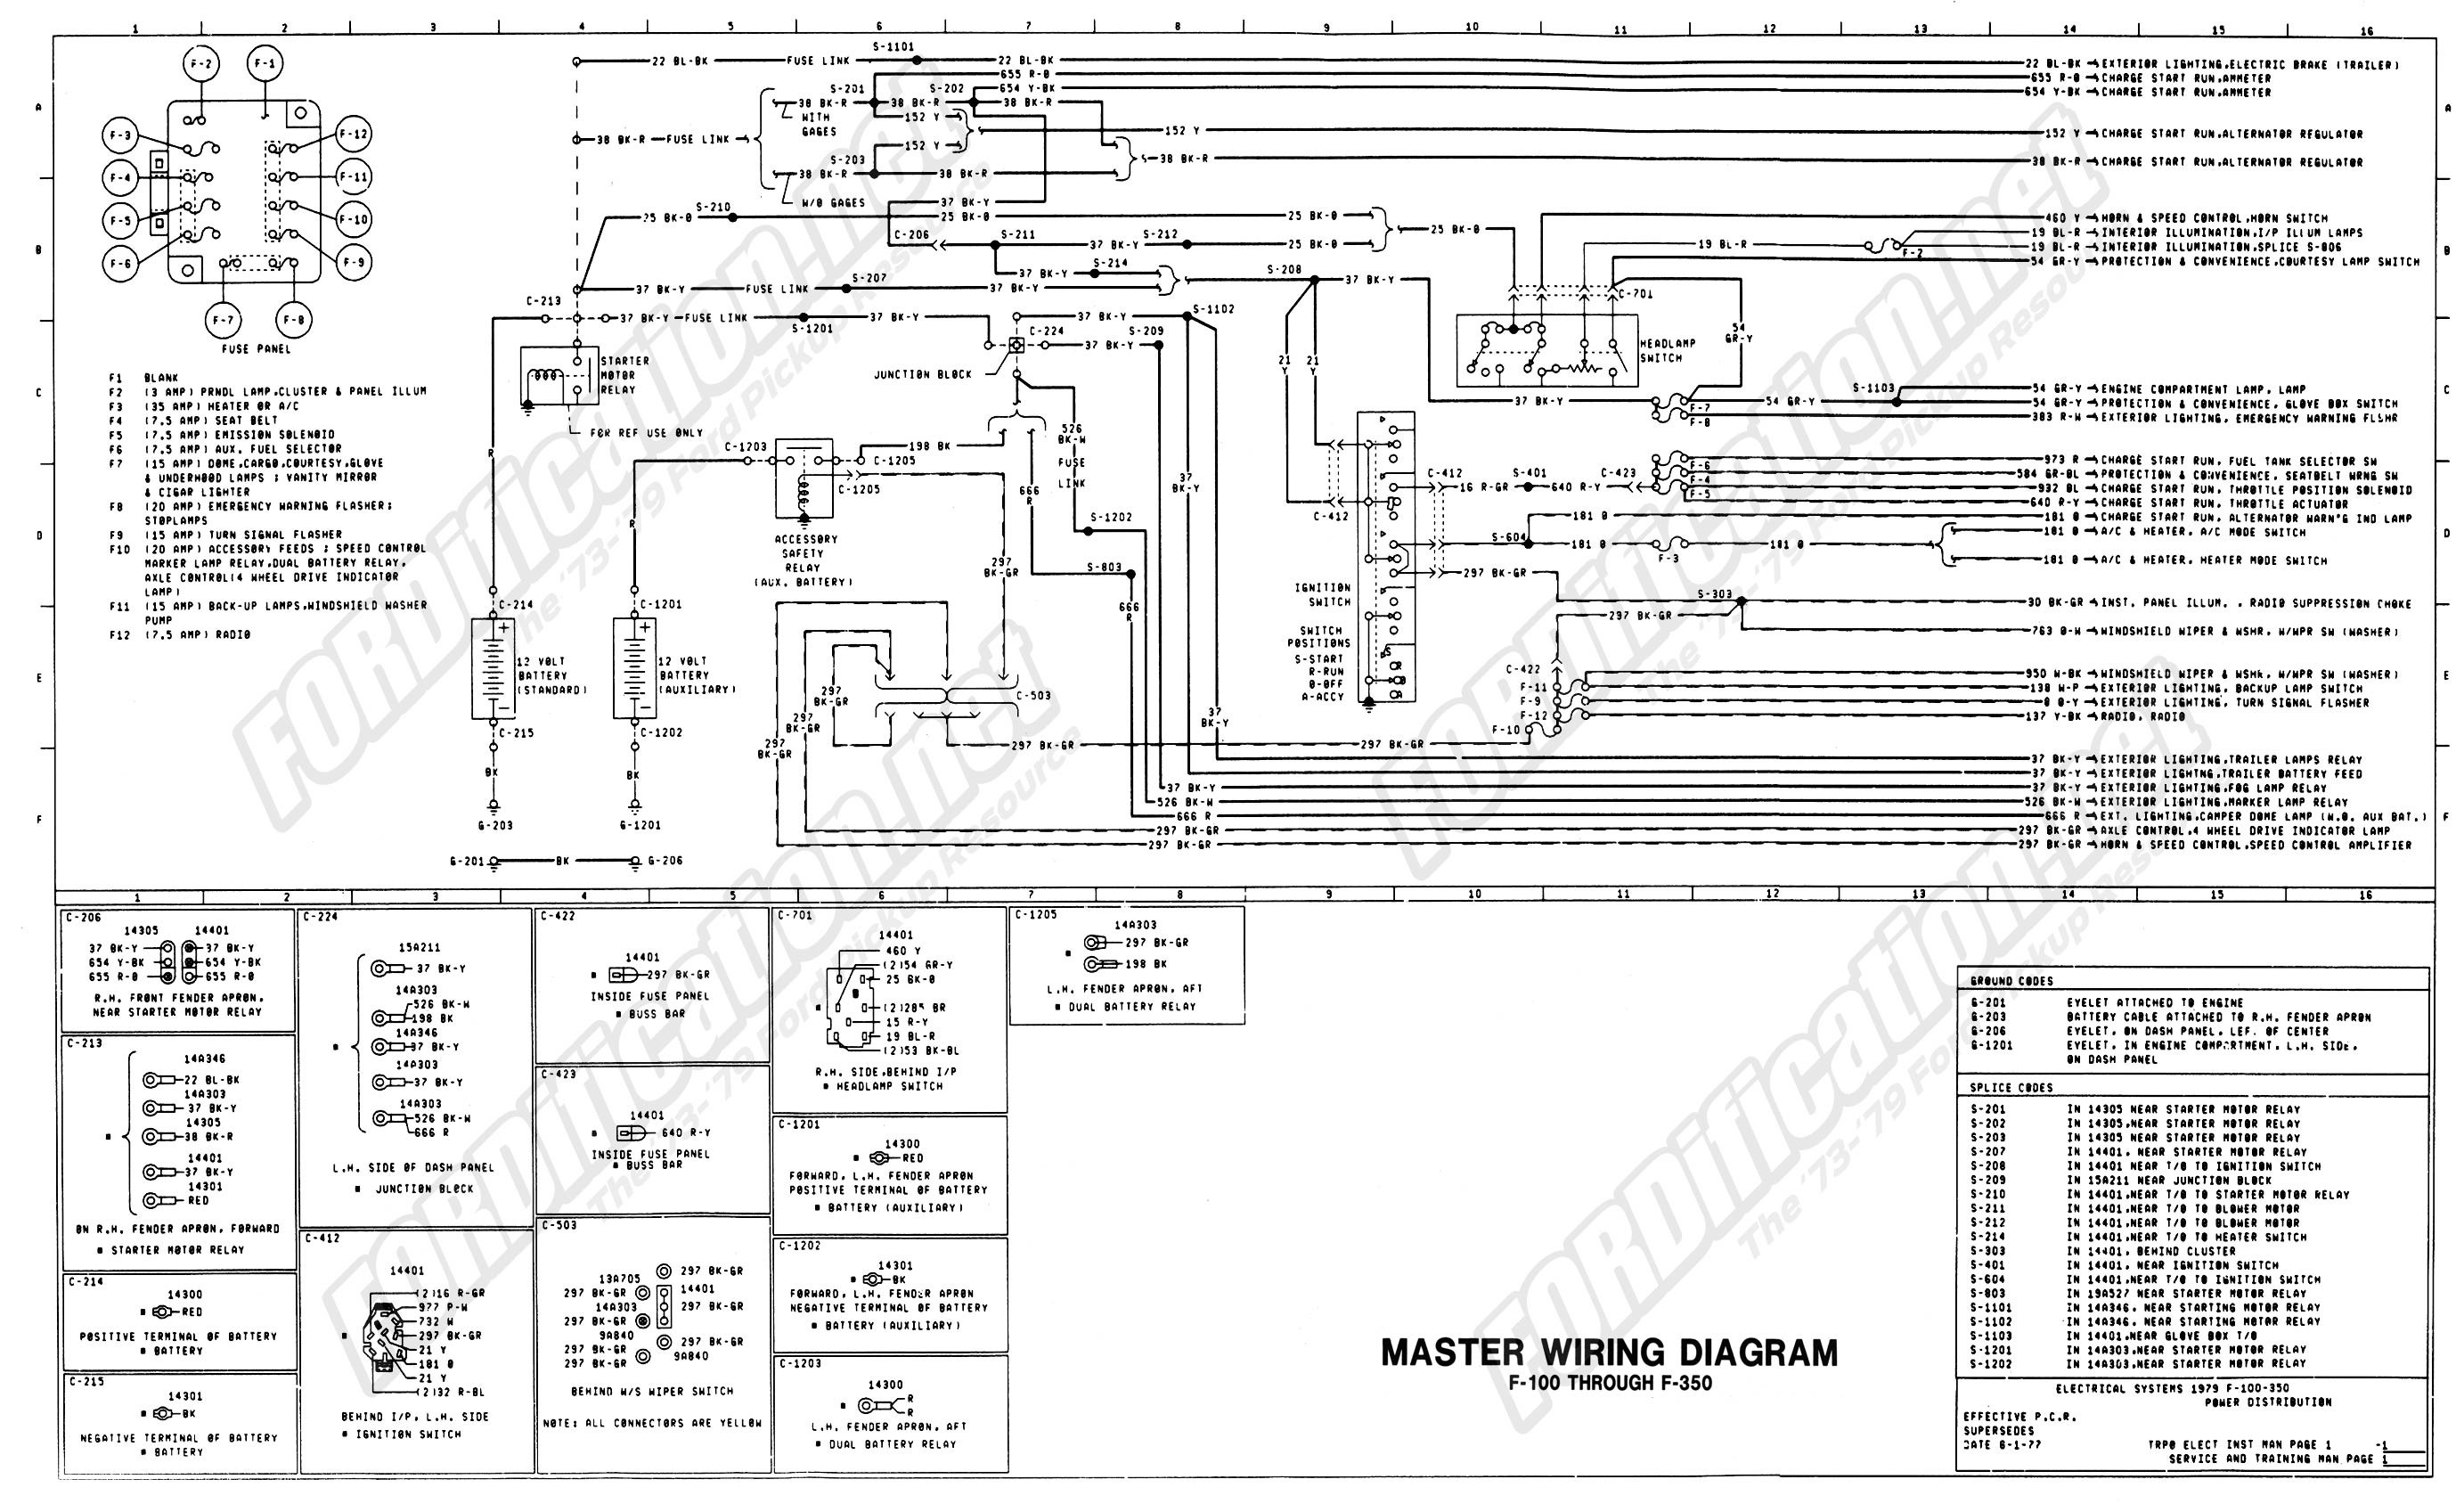 Sterling truck wiring diagrams wiring diagram detailed 2006 yamaha wiring diagram sterling wiring schematics wiring diagram freightliner wiring diagrams sterling truck wiring diagrams